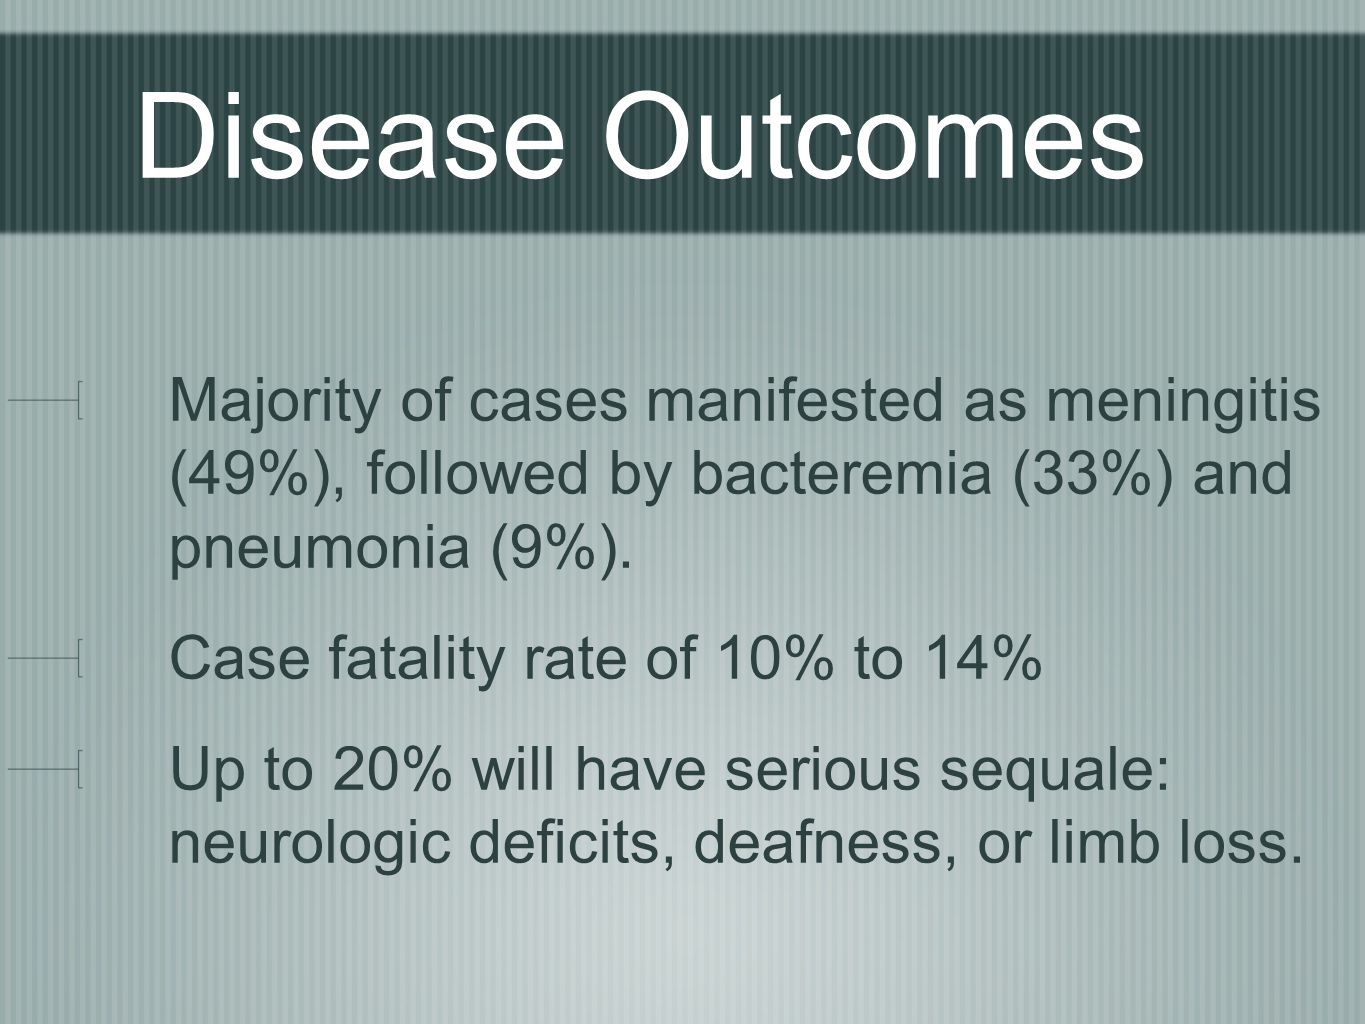 Disease Outcomes Majority of cases manifested as meningitis (49%), followed by bacteremia (33%) and pneumonia (9%).